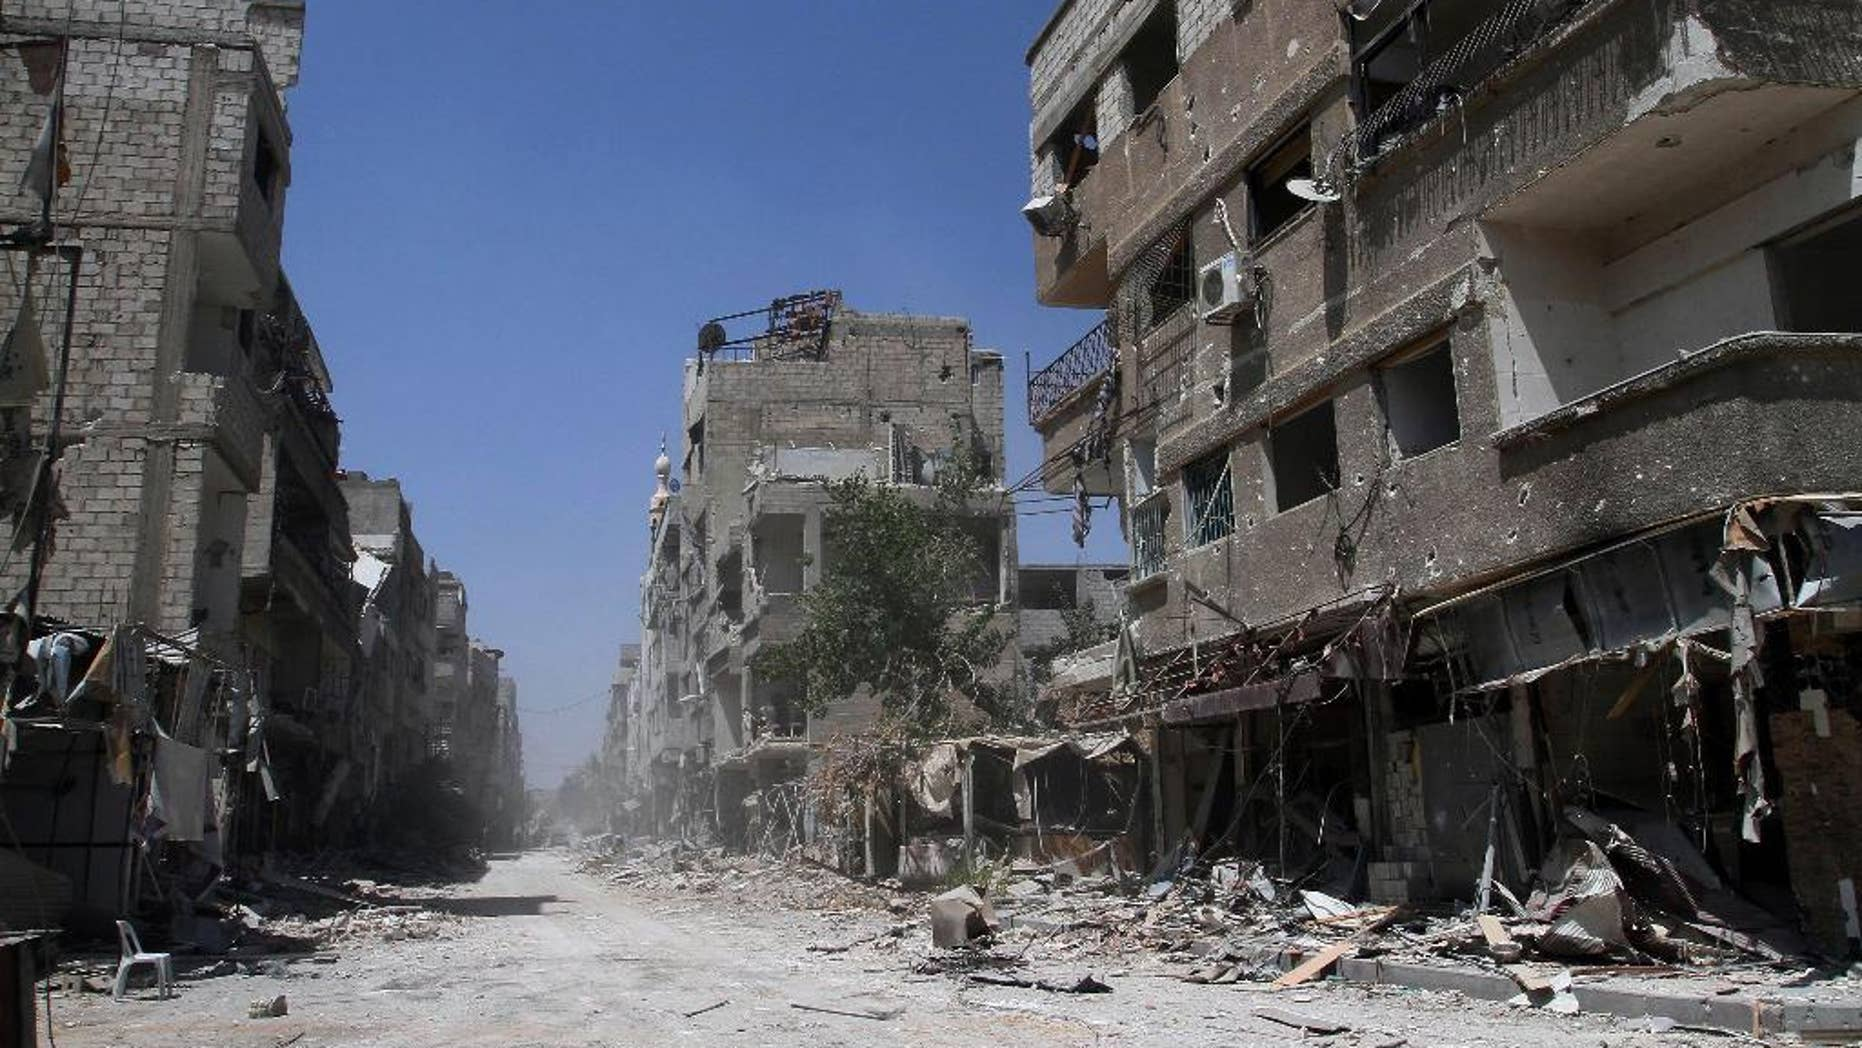 Aug. 15, 2014: In this photo taken during a Syrian government-led media tour, buildings damaged during battles between Syrian troops and rebels stand along an empty street in Mleiha, some 6 miles southeast of downtown Damascus, Syria. (AP)